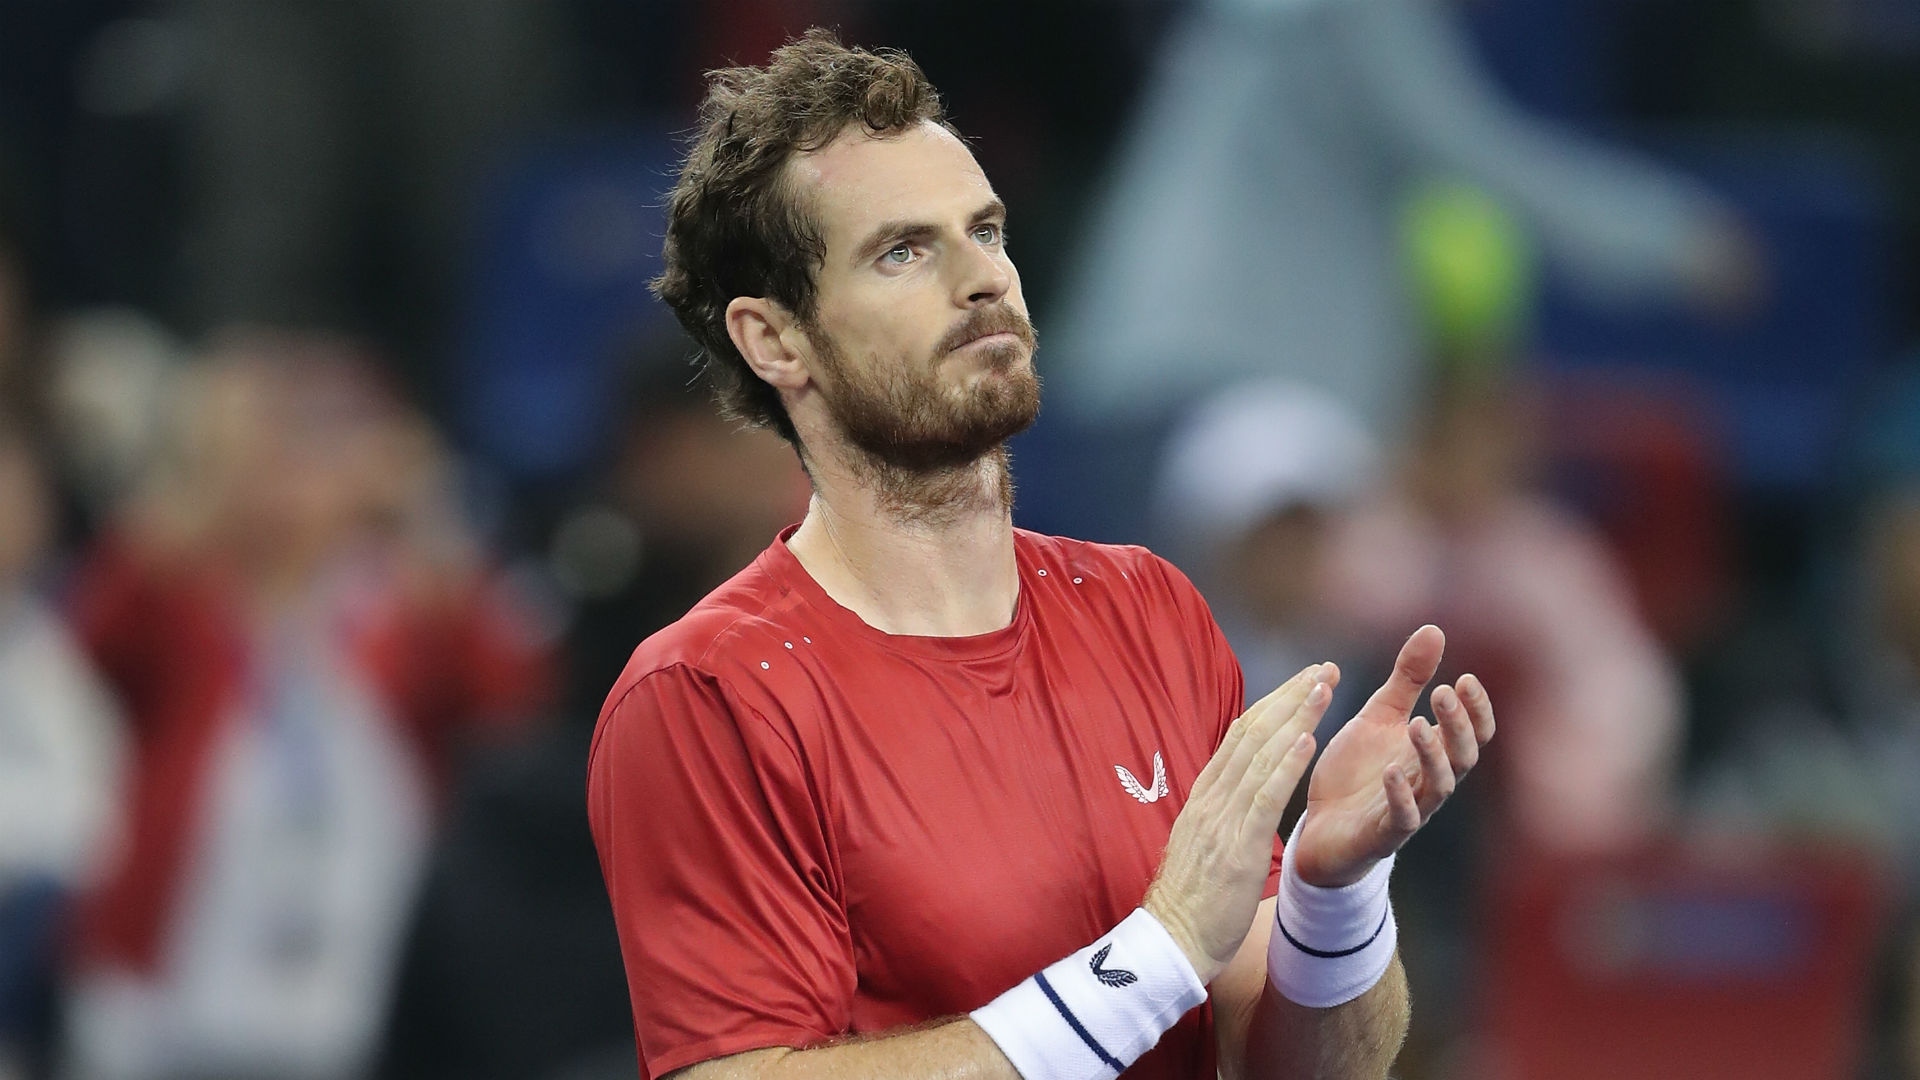 There was another encouraging performance from Andy Murray in Antwerp as he saw the back of eighth seed Pablo Cuevas in straight sets.